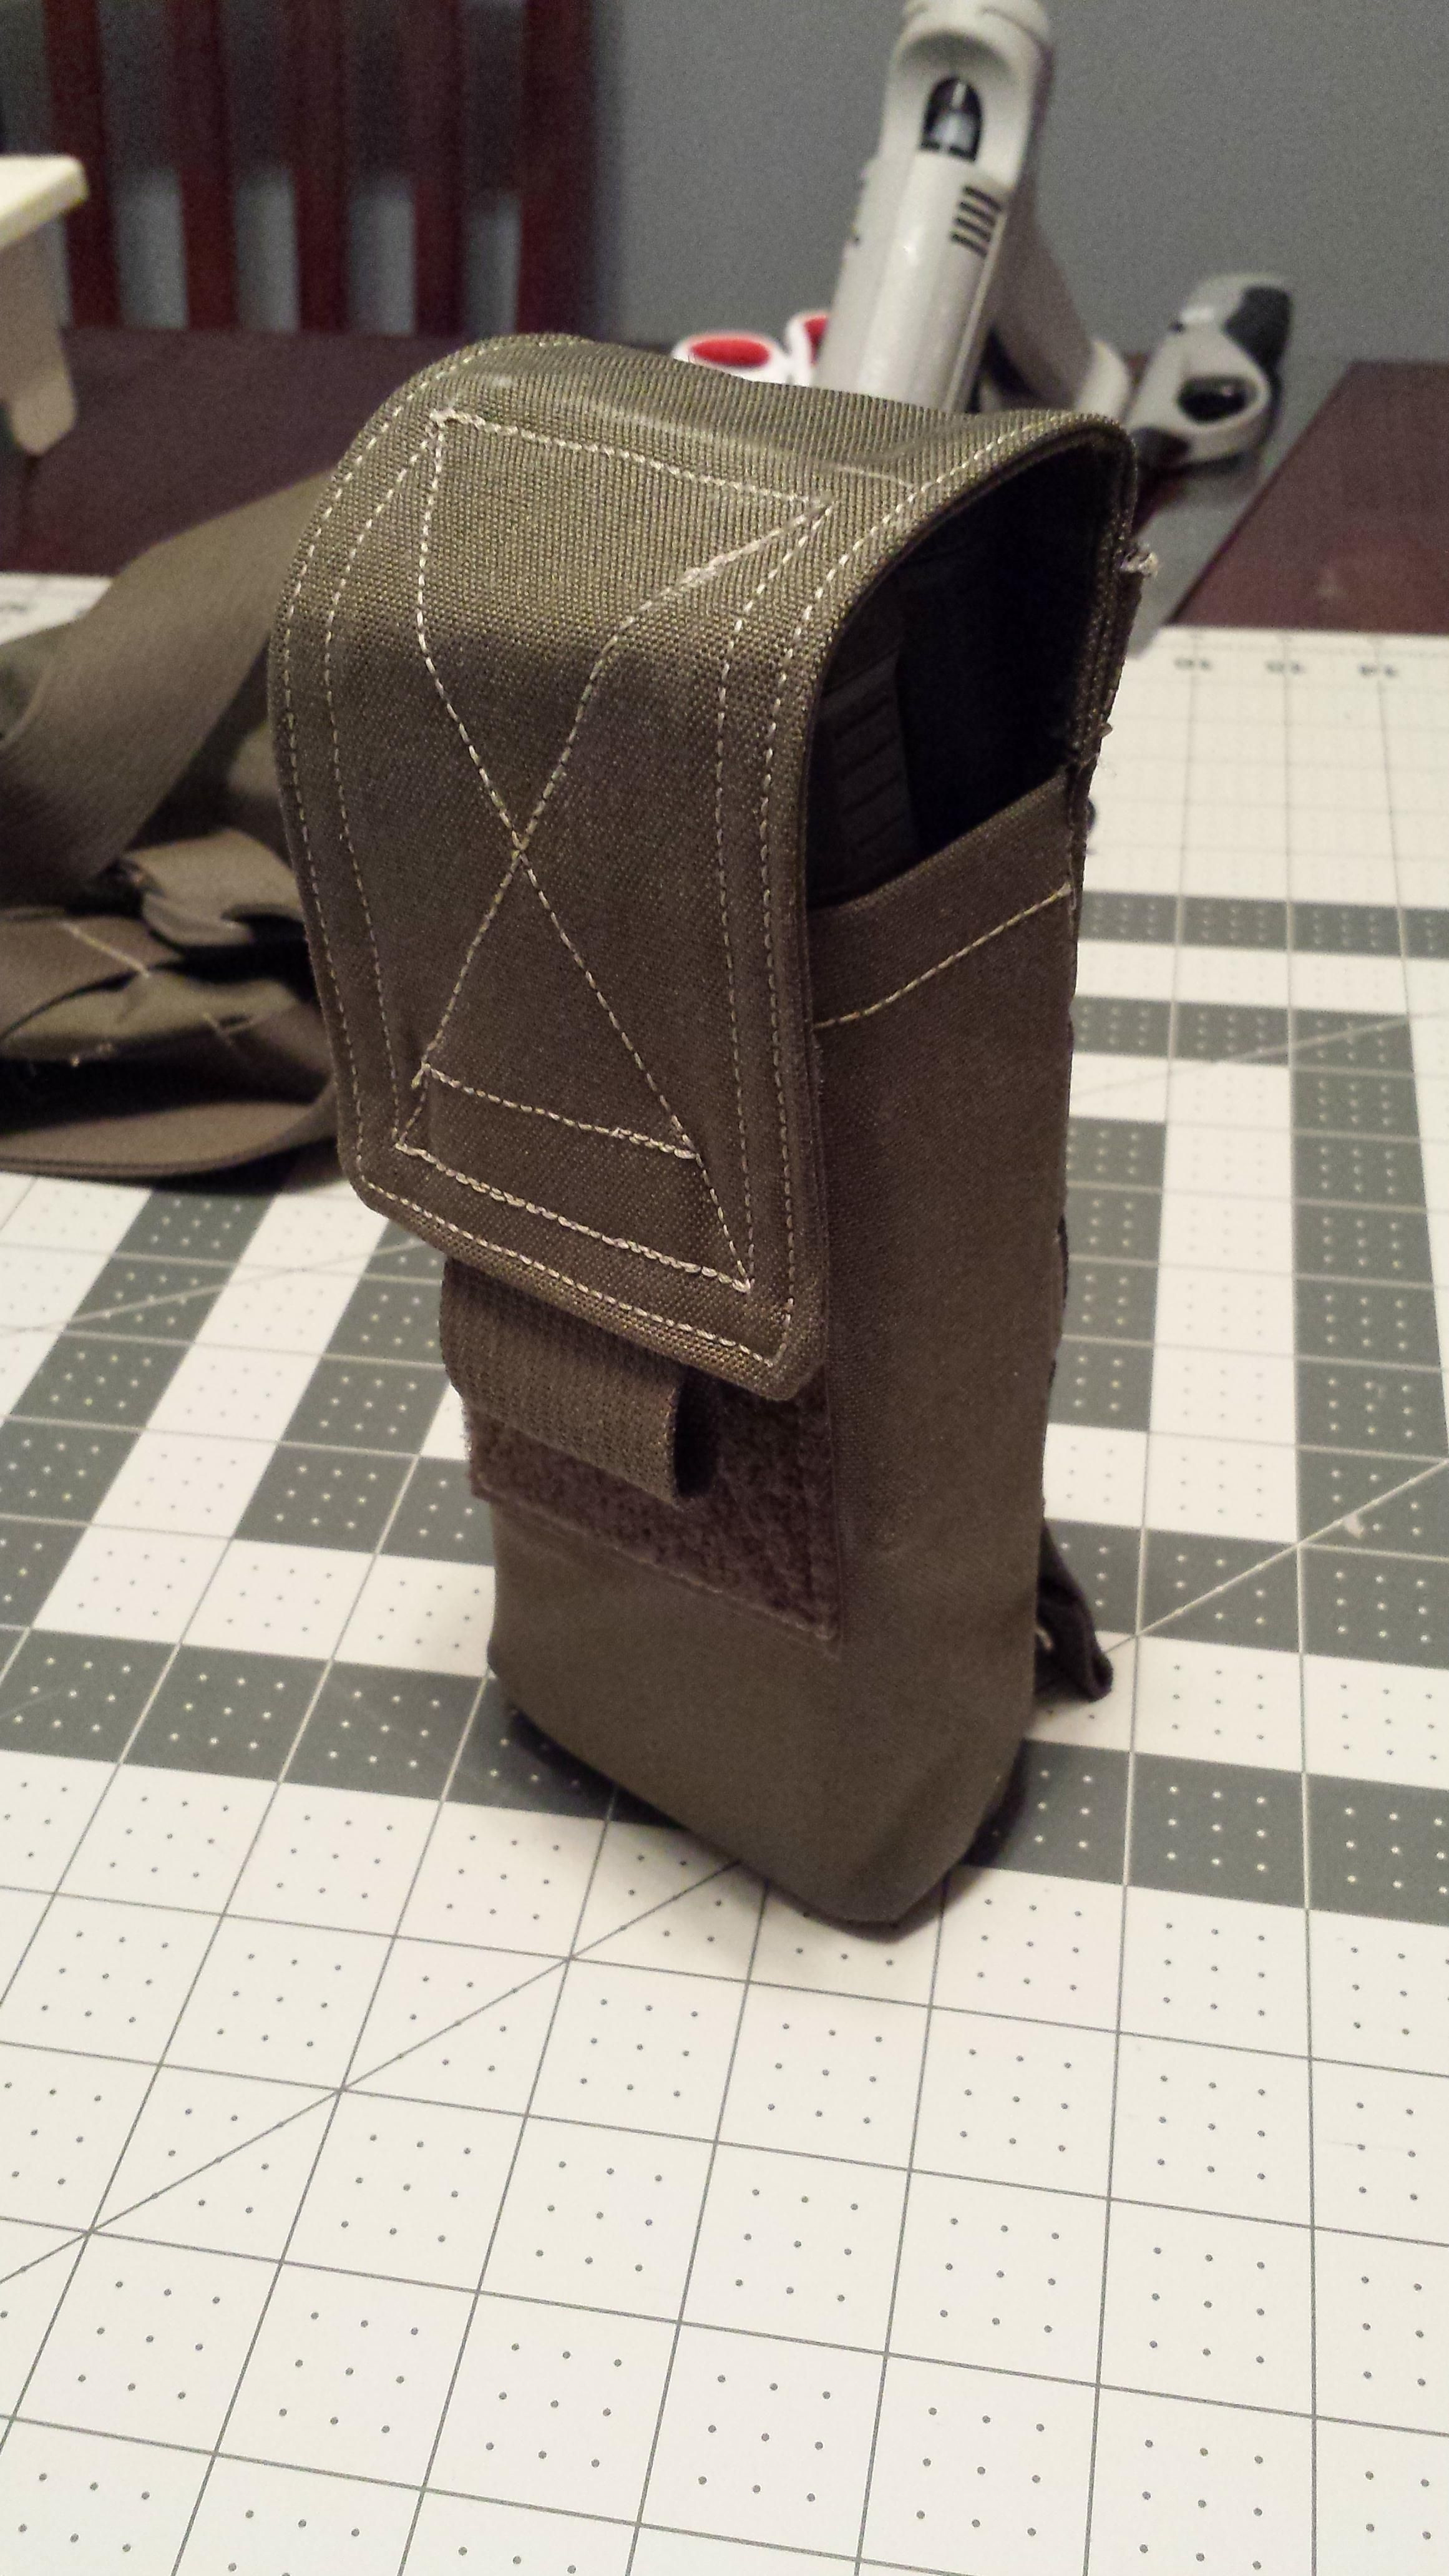 No Pattern] Ammo pouch with velcro flaps and MOLLE webbing - for no ...